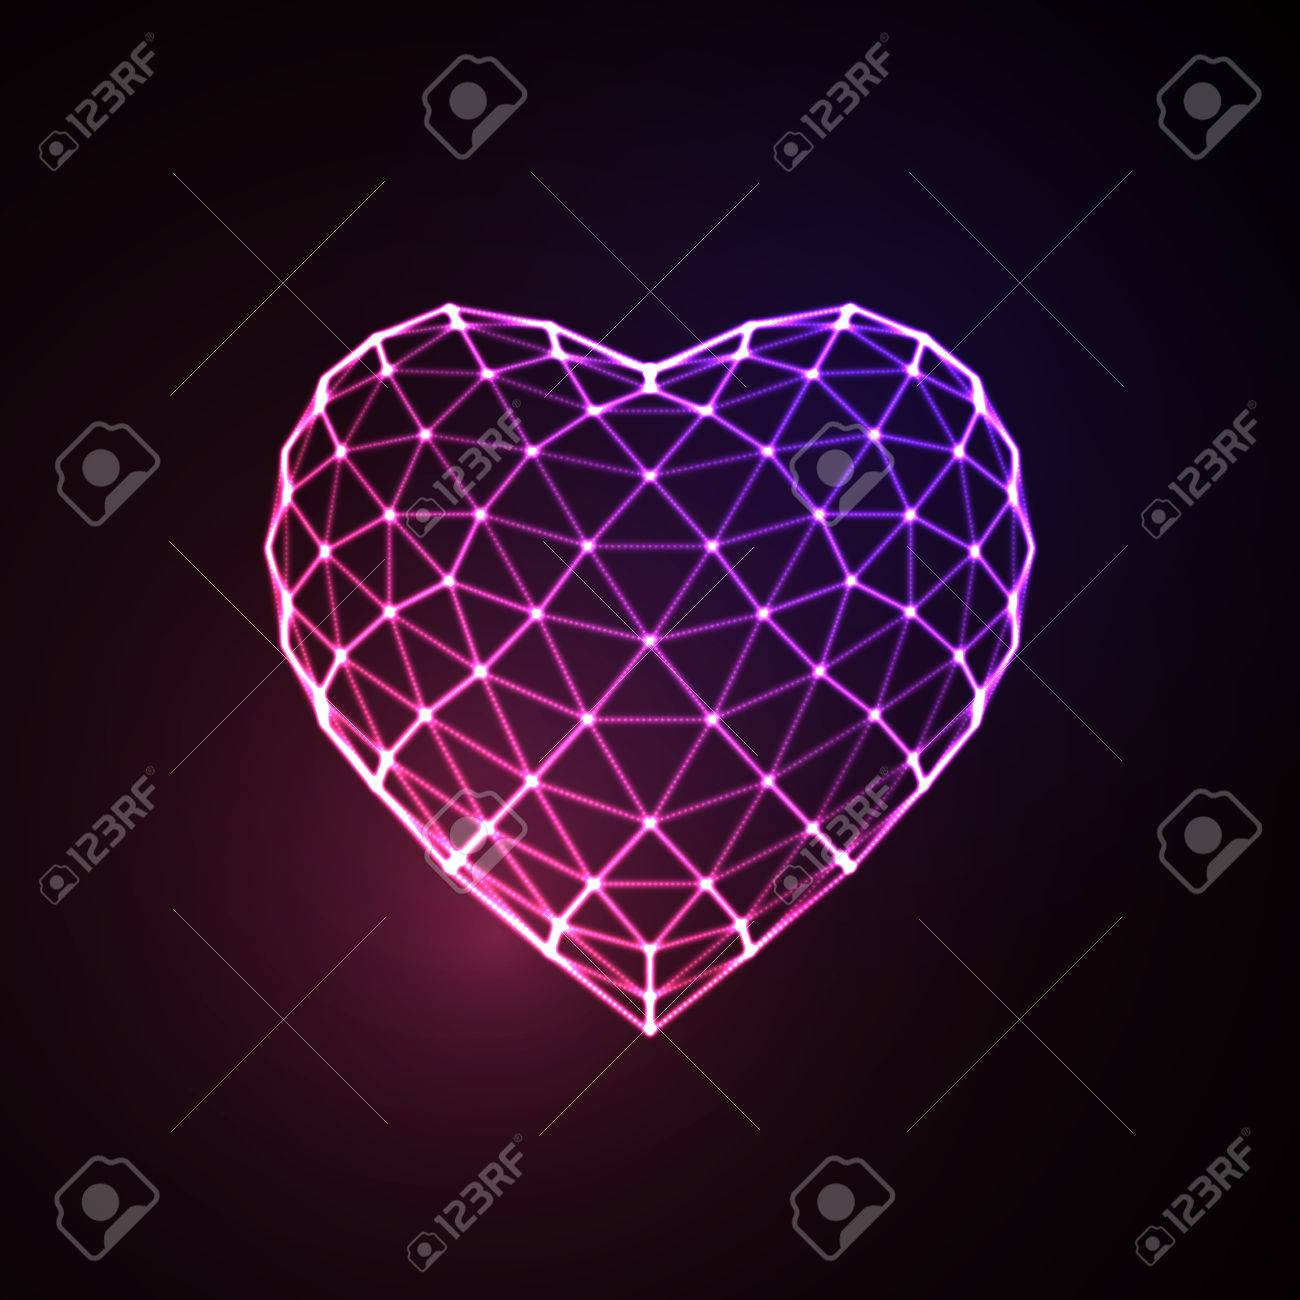 Happy Valentines Day. 3D illuminated neon heart of glowing particles and wireframe. Vector illustration. - 53133370